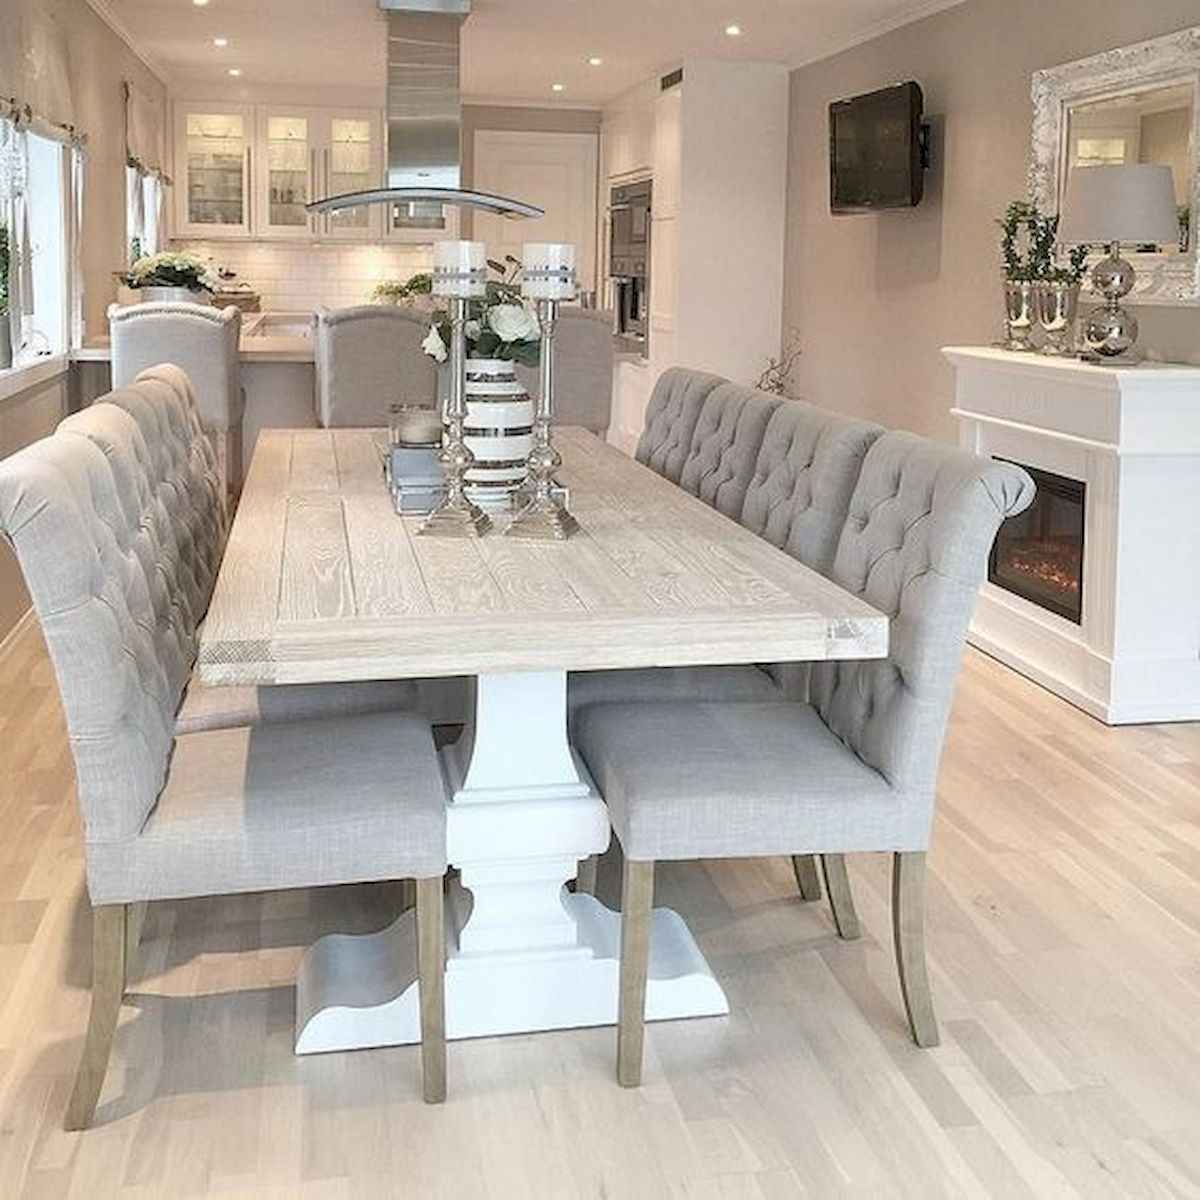 55 Stunning DIY Projects Furniture Tables Dining Rooms Design Ideas (24)